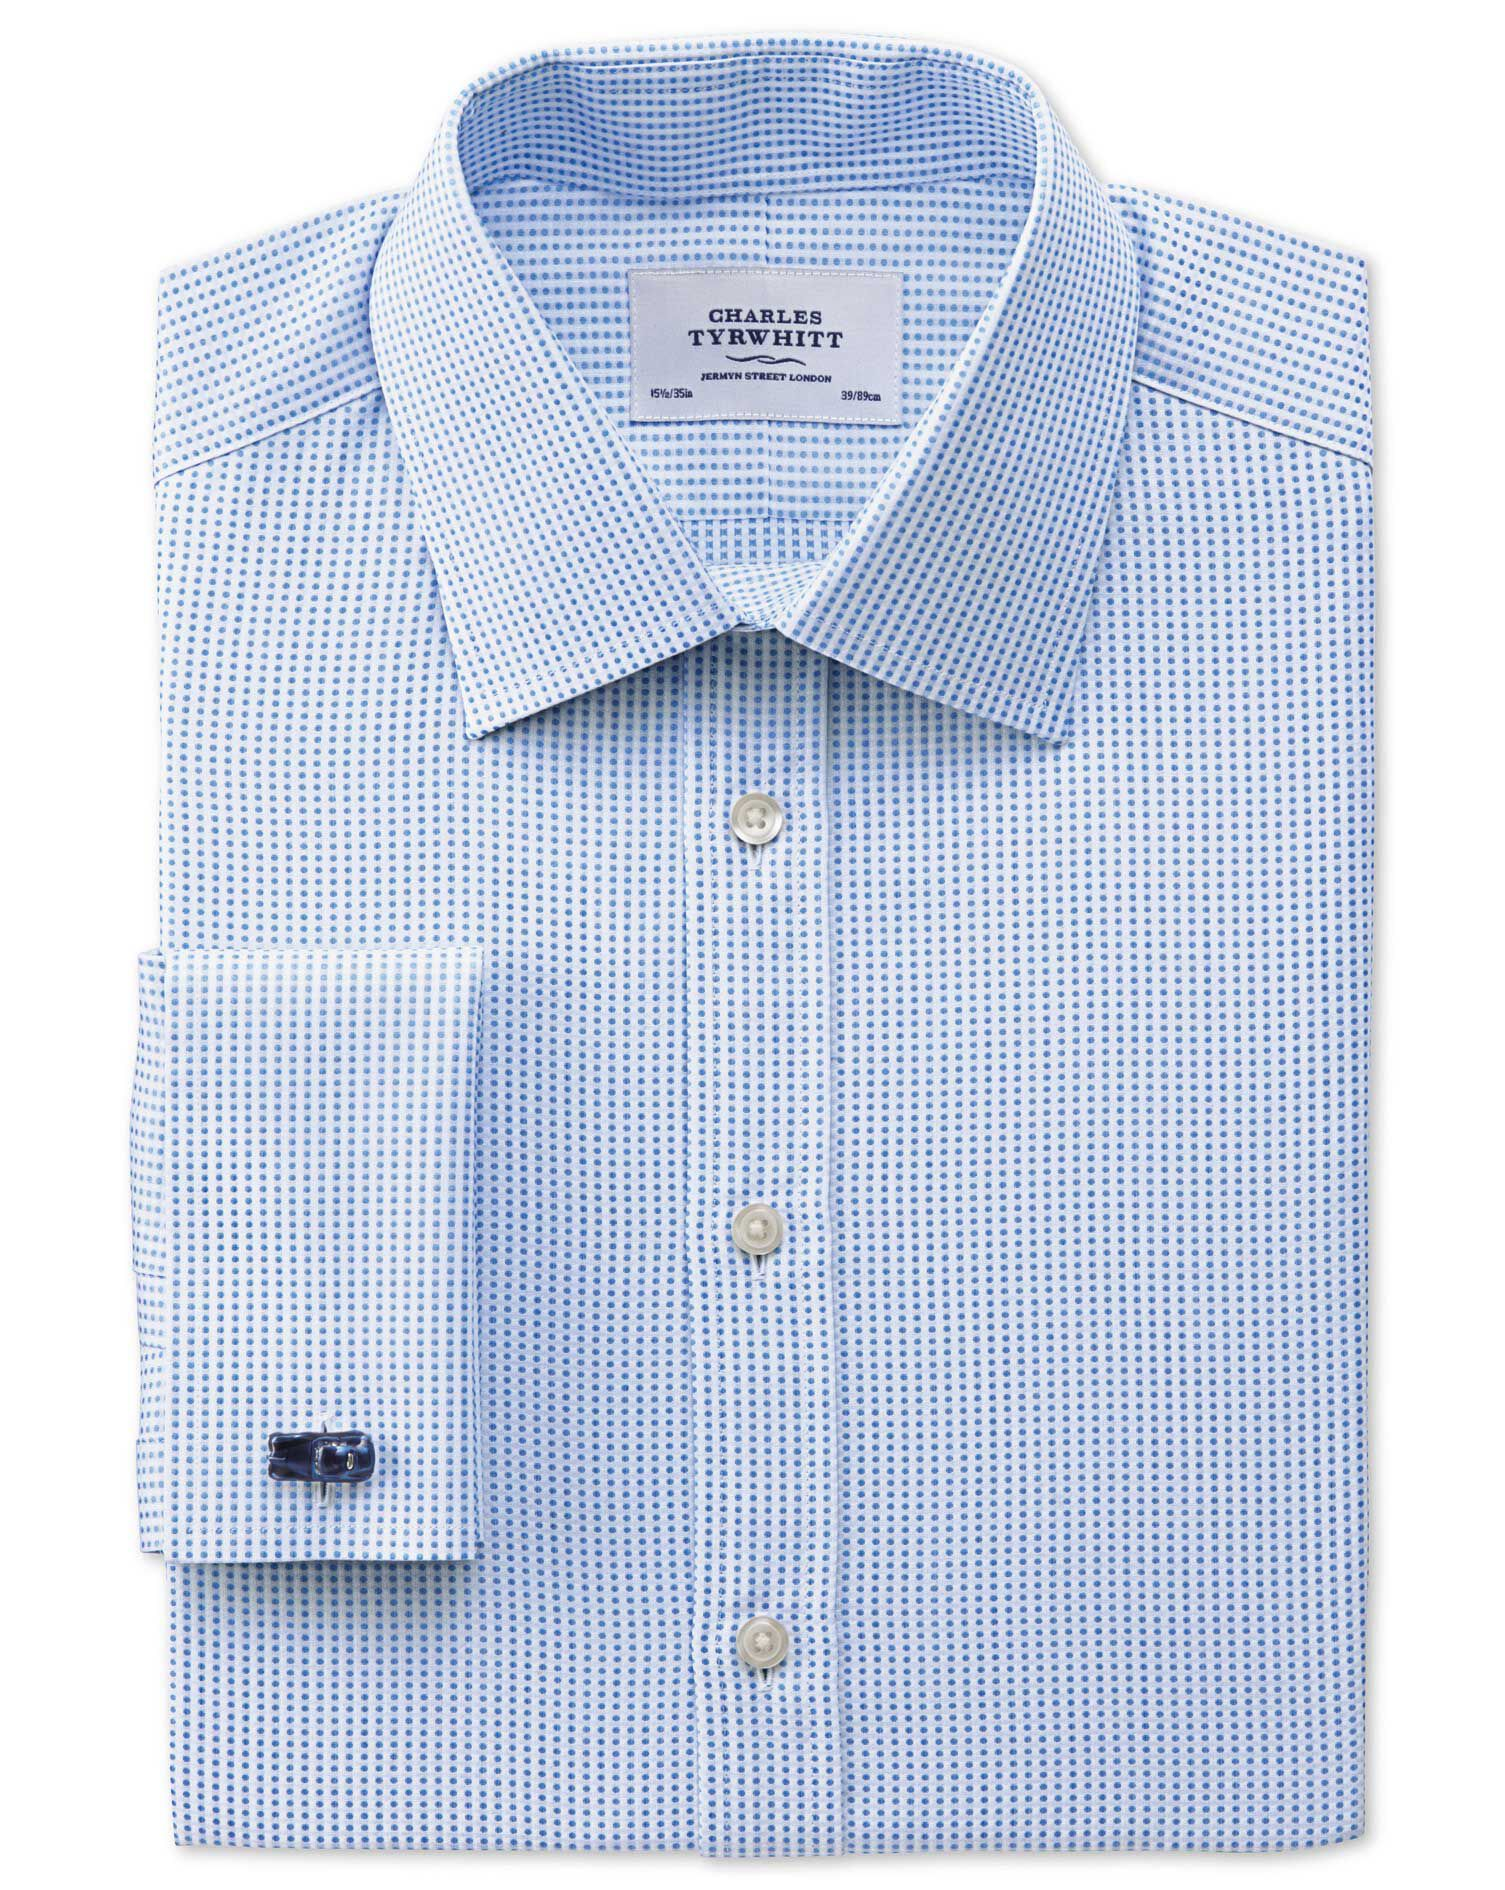 Slim Fit Pima Cotton Double-Faced Sky Blue Formal Shirt Double Cuff Size 15.5/37 by Charles Tyrwhitt